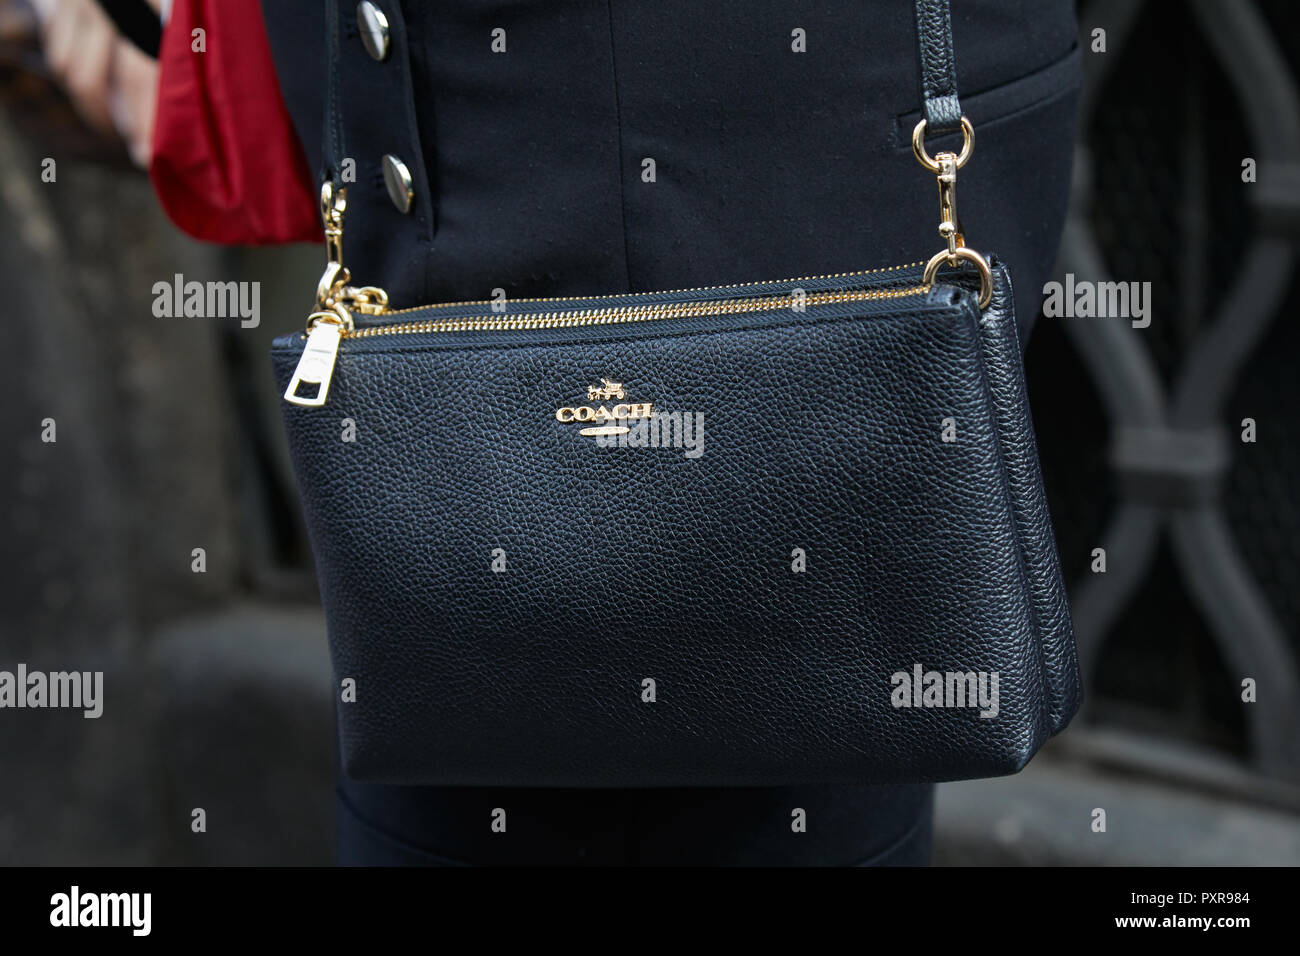 c36c1a5252145 MILAN, ITALY - SEPTEMBER 22, 2018: Woman with black leather Coach bag before